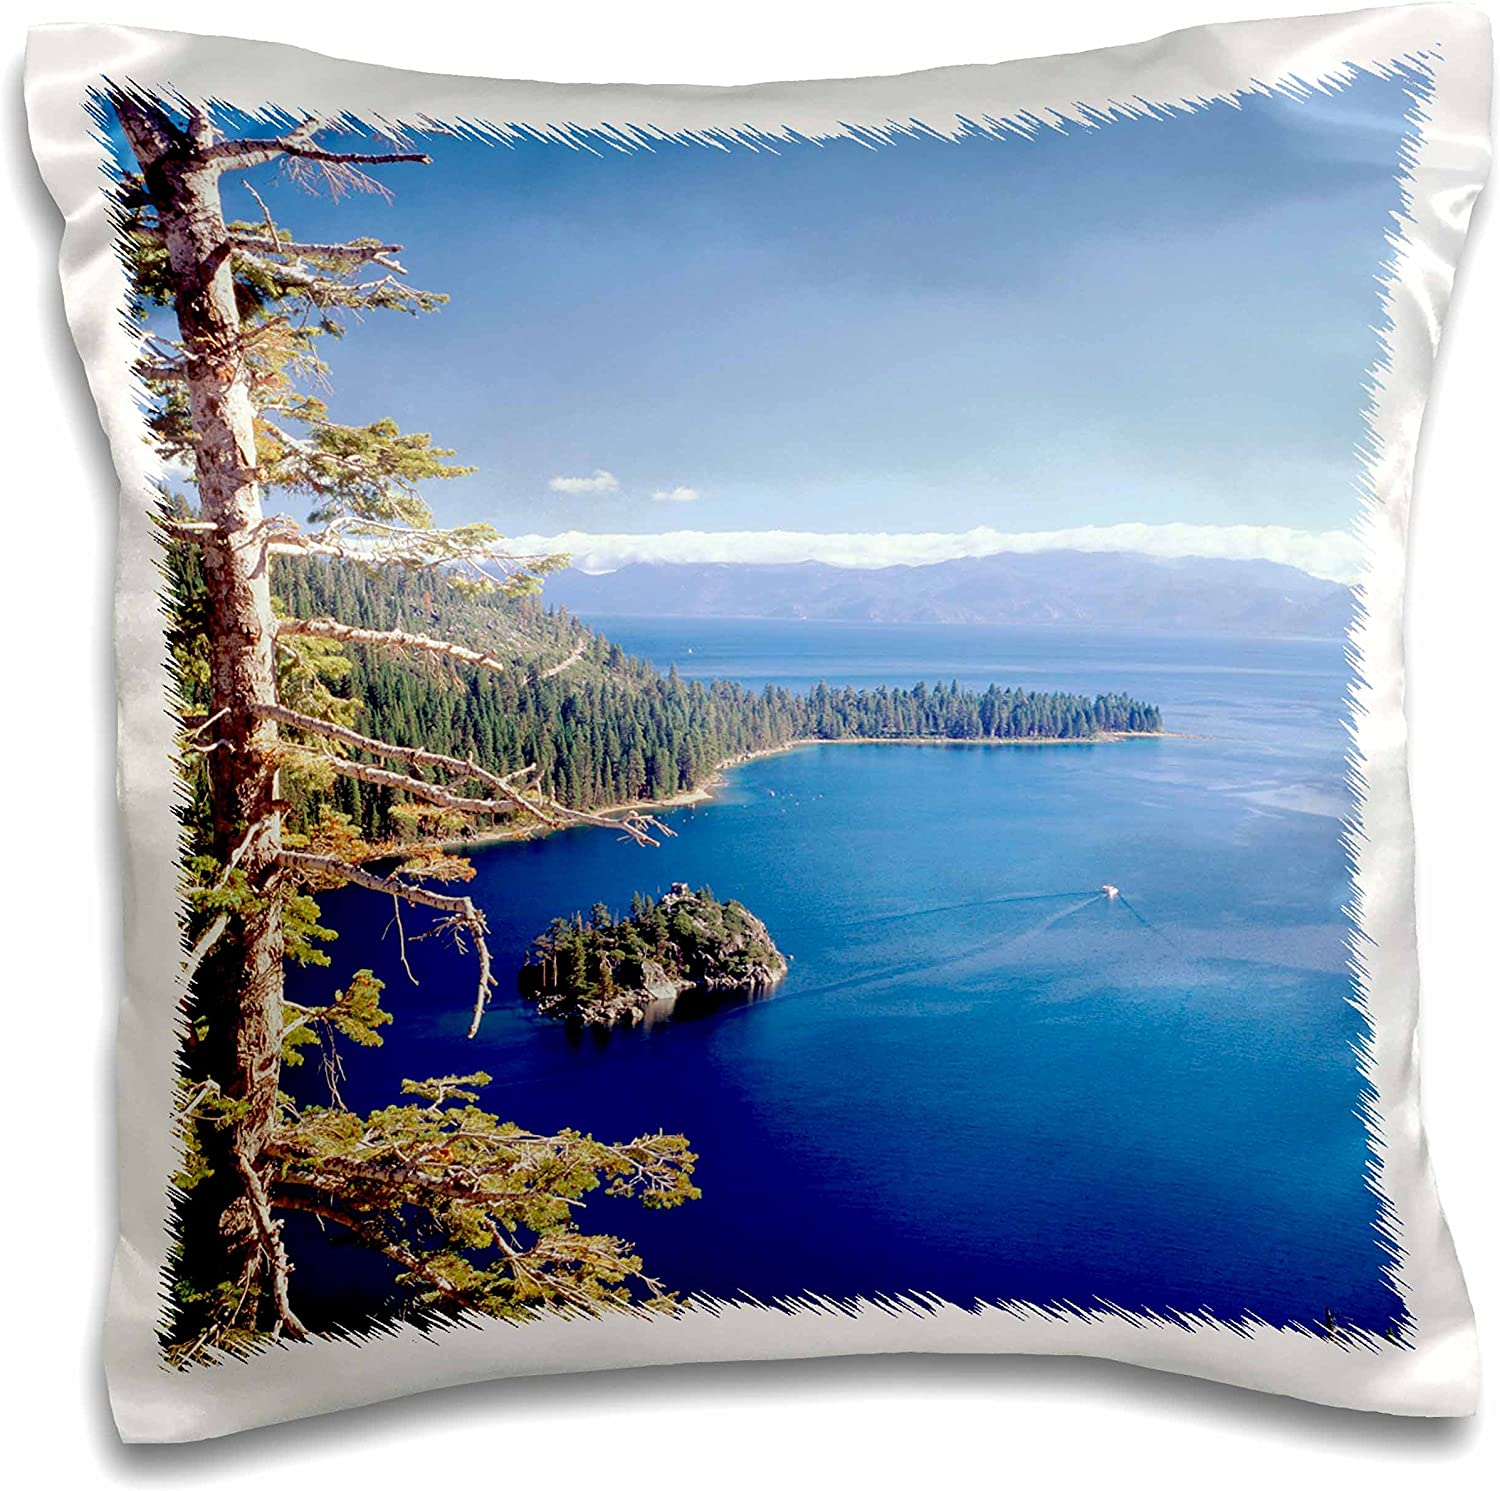 3dRose Lake Tahoe, Emerald Bay, California, Usa-Us05 Wbi1756-Walter Bibikow Pillow Case 16 x 16